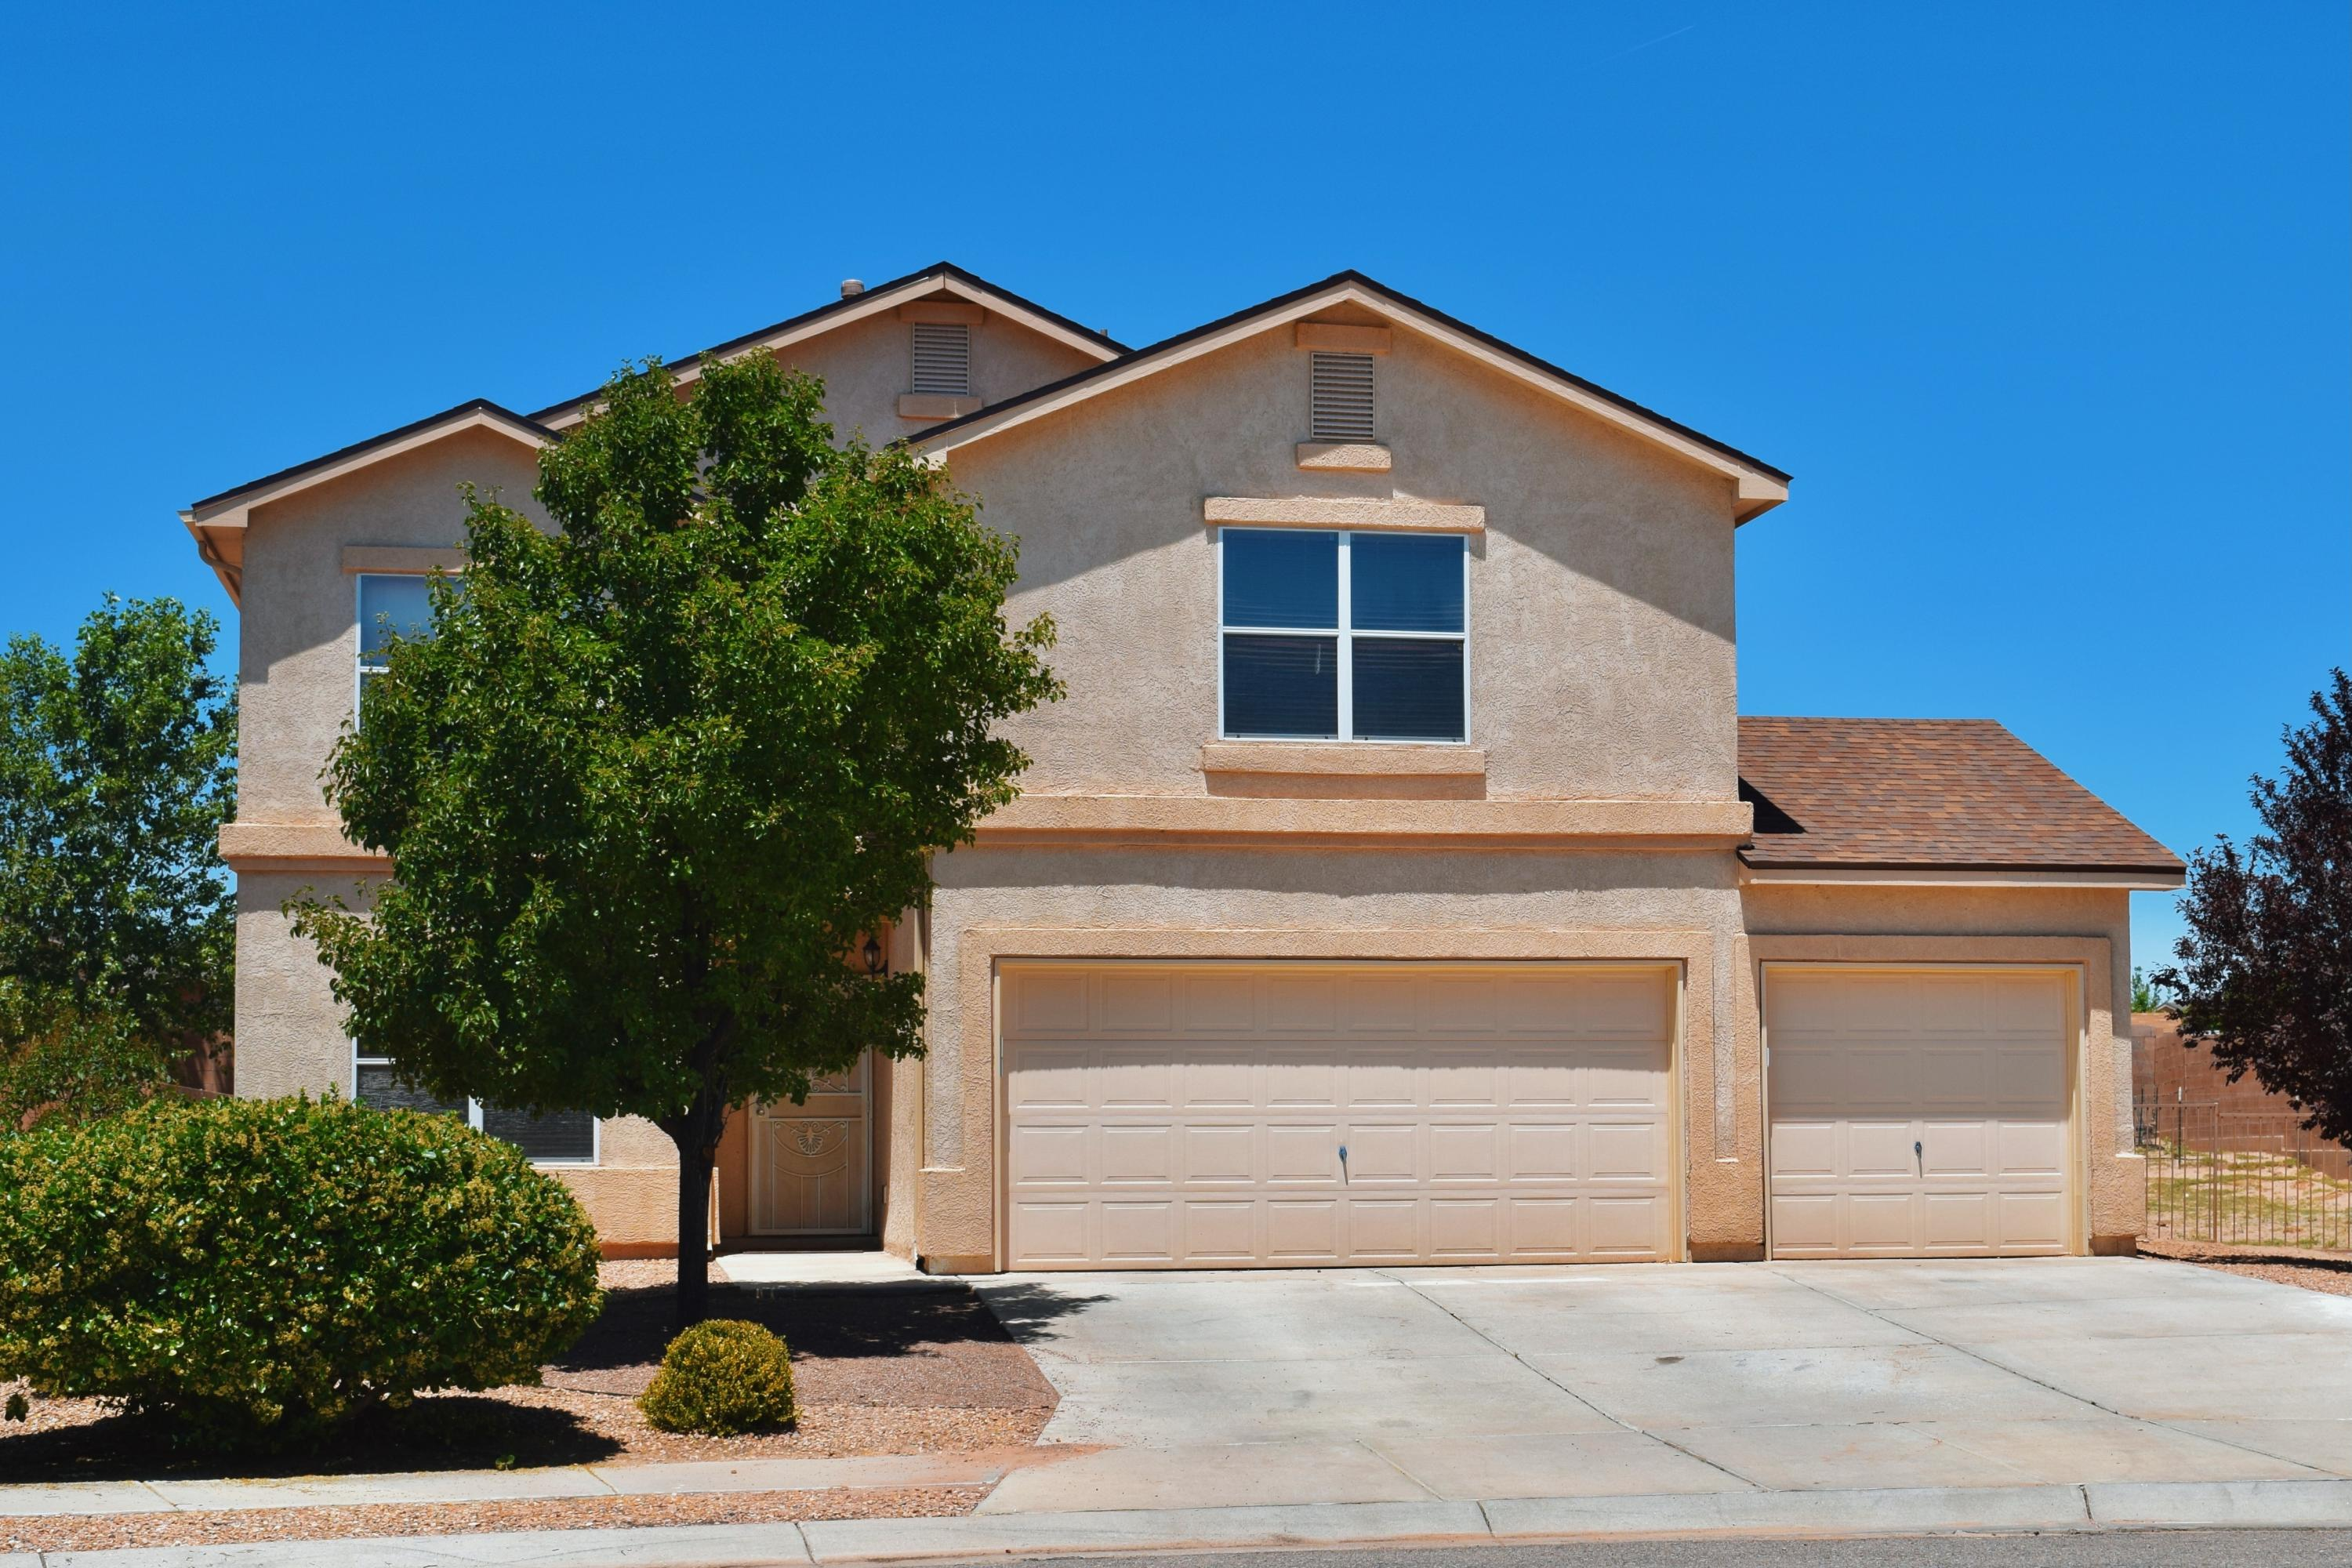 Located in the highly desired Huning Ranch Community in the Sagebrush Subdivision, this gorgeous and spacious D.R. Horton home features 4 beds/3 baths, two living room areas, open loft area (large enough to be a 5th bedroom), & a big backyard! The location of this home is minutes away from the freeway as well as many desirable stores and restaurants! Schedule your showing today!